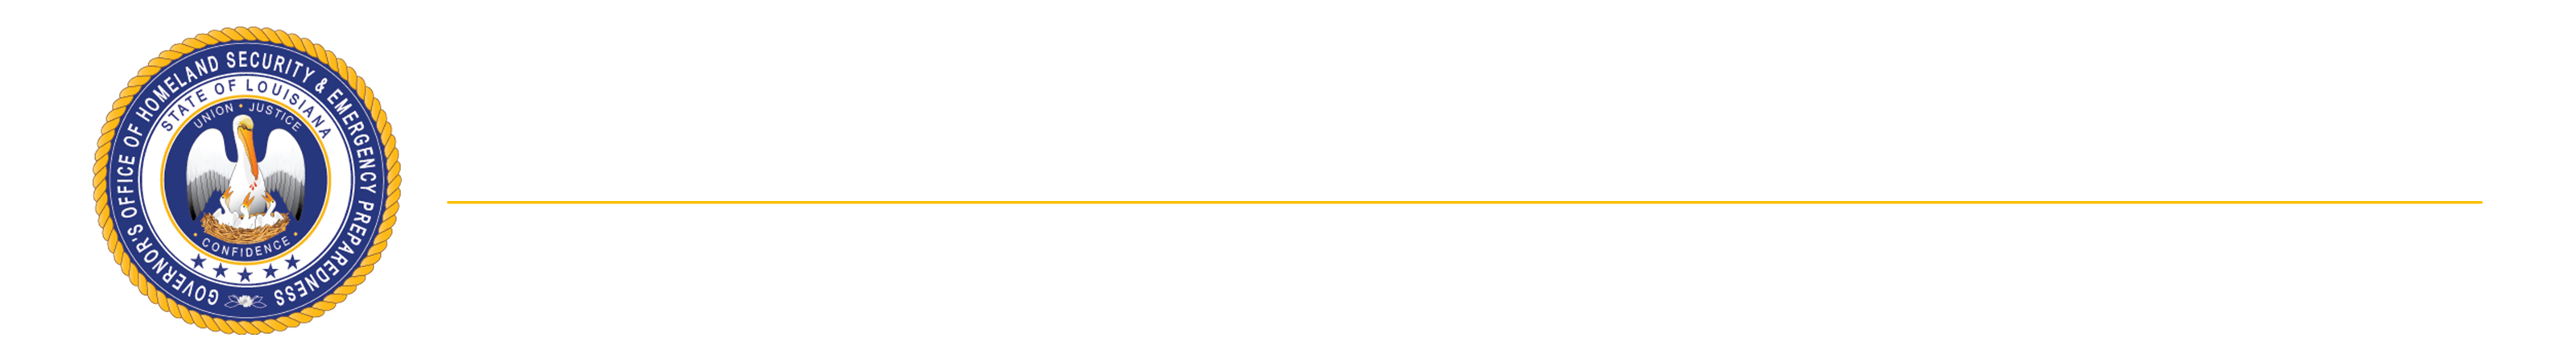 Governor's Office of Homland Security & Emergency Preparedness, State of Louisiana